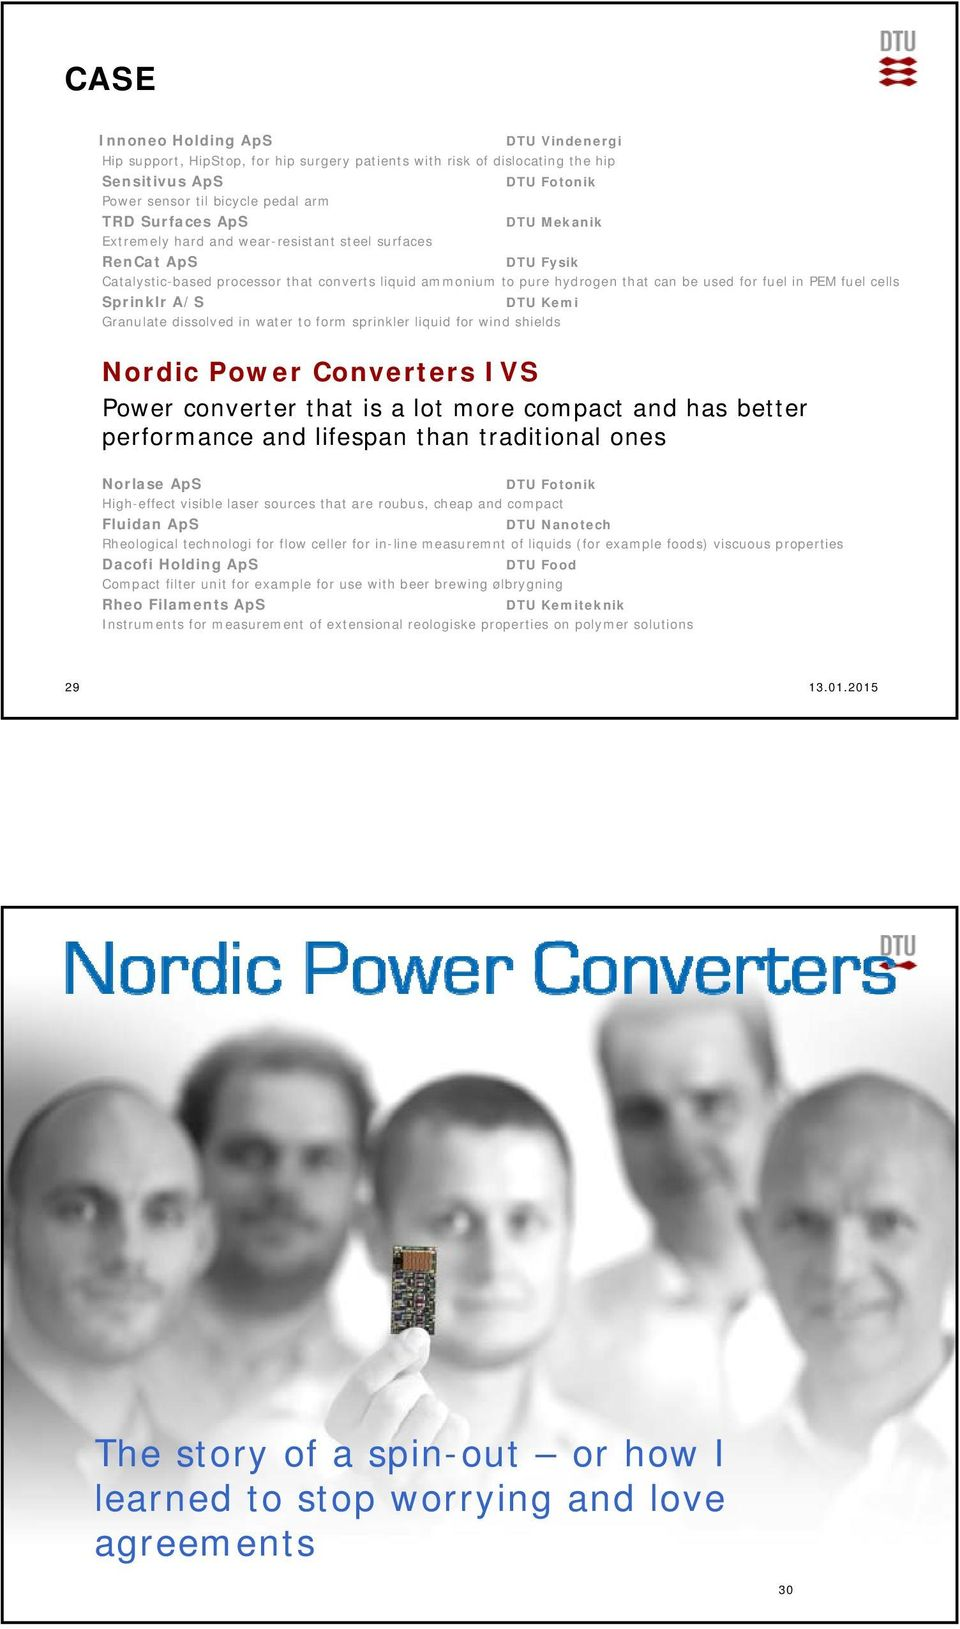 Sprinklr A/S DTU Kemi Granulate dissolved in water to form sprinkler liquid for wind shields Nordic Power Converters IVS Power converter that is a lot more compact and has better performance and